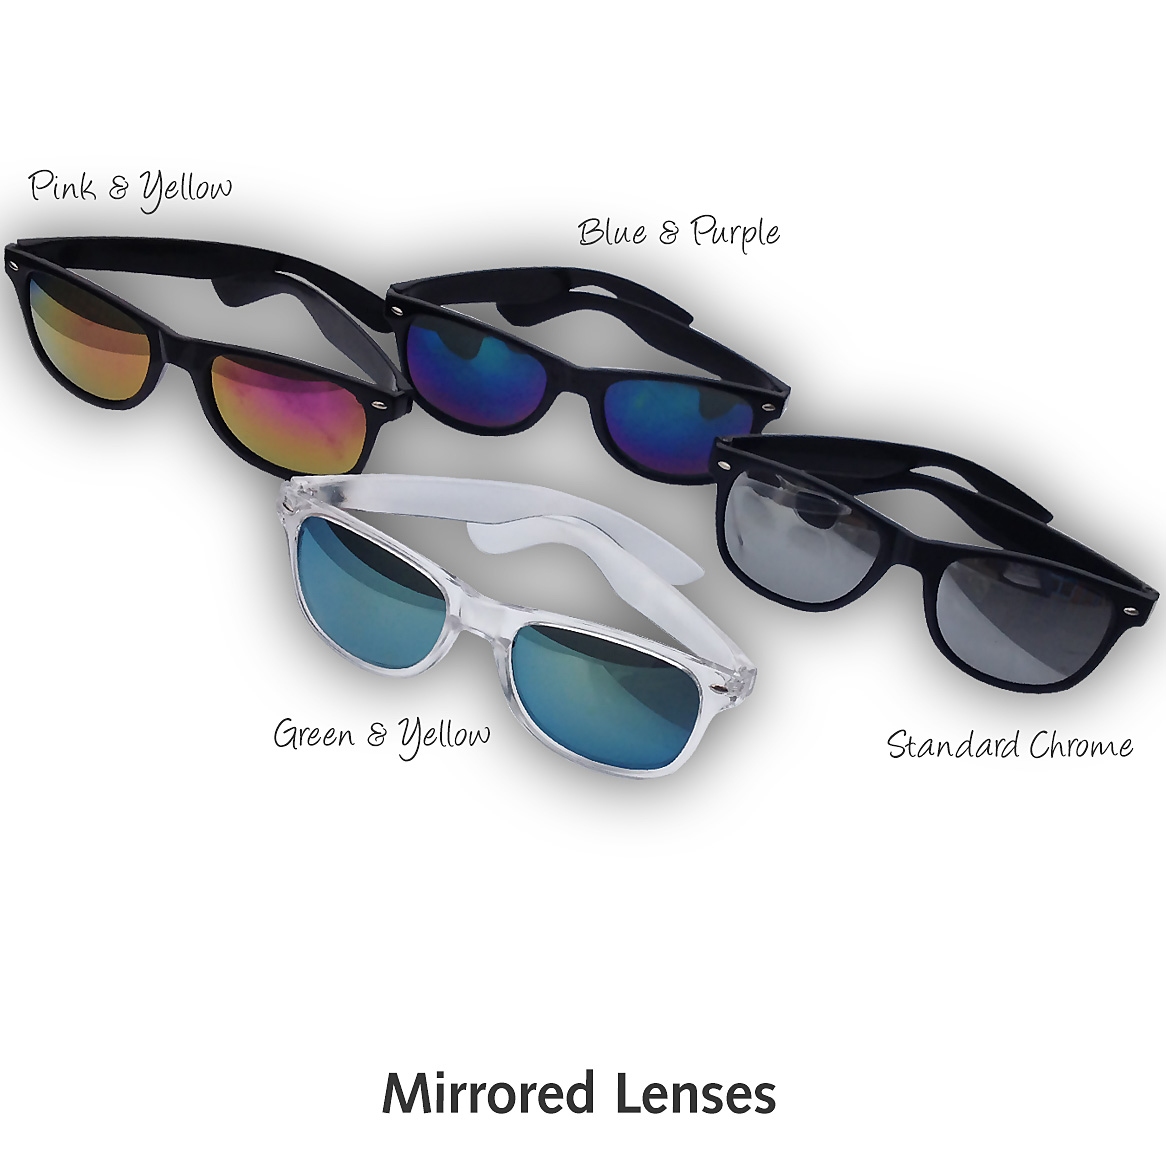 Promotional Sunglasses with Mirrored Lenses